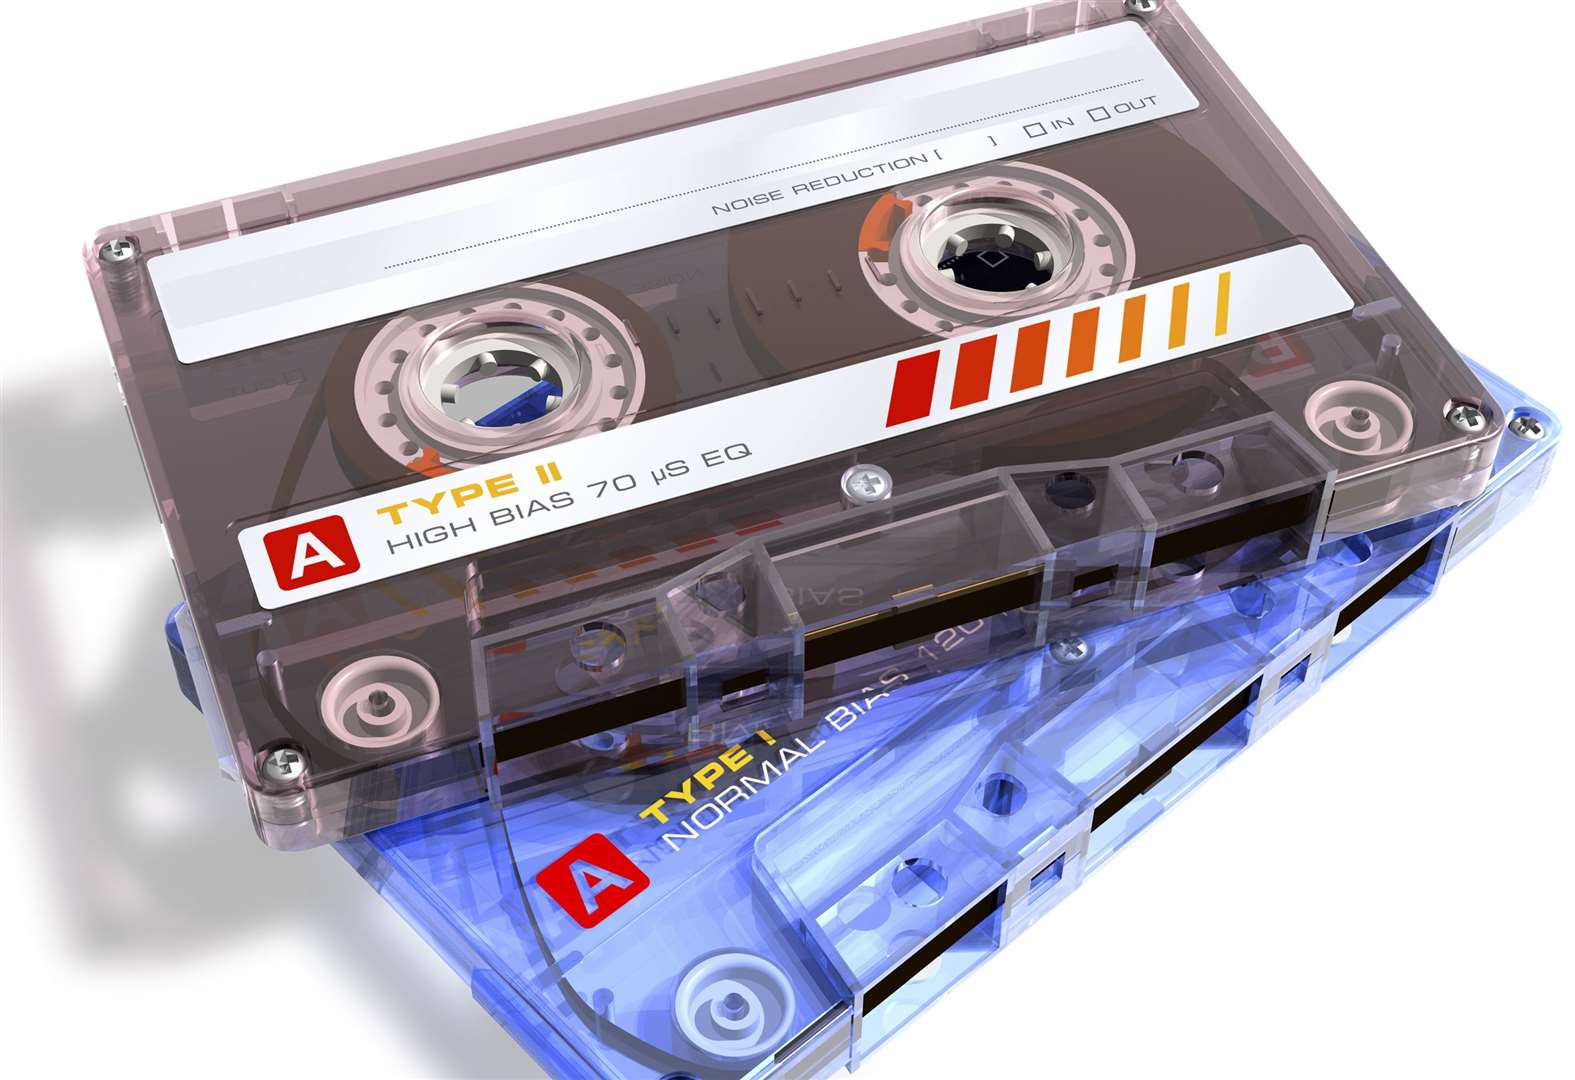 The cassette - which apparently is making a comeback - was the Spotify of its day